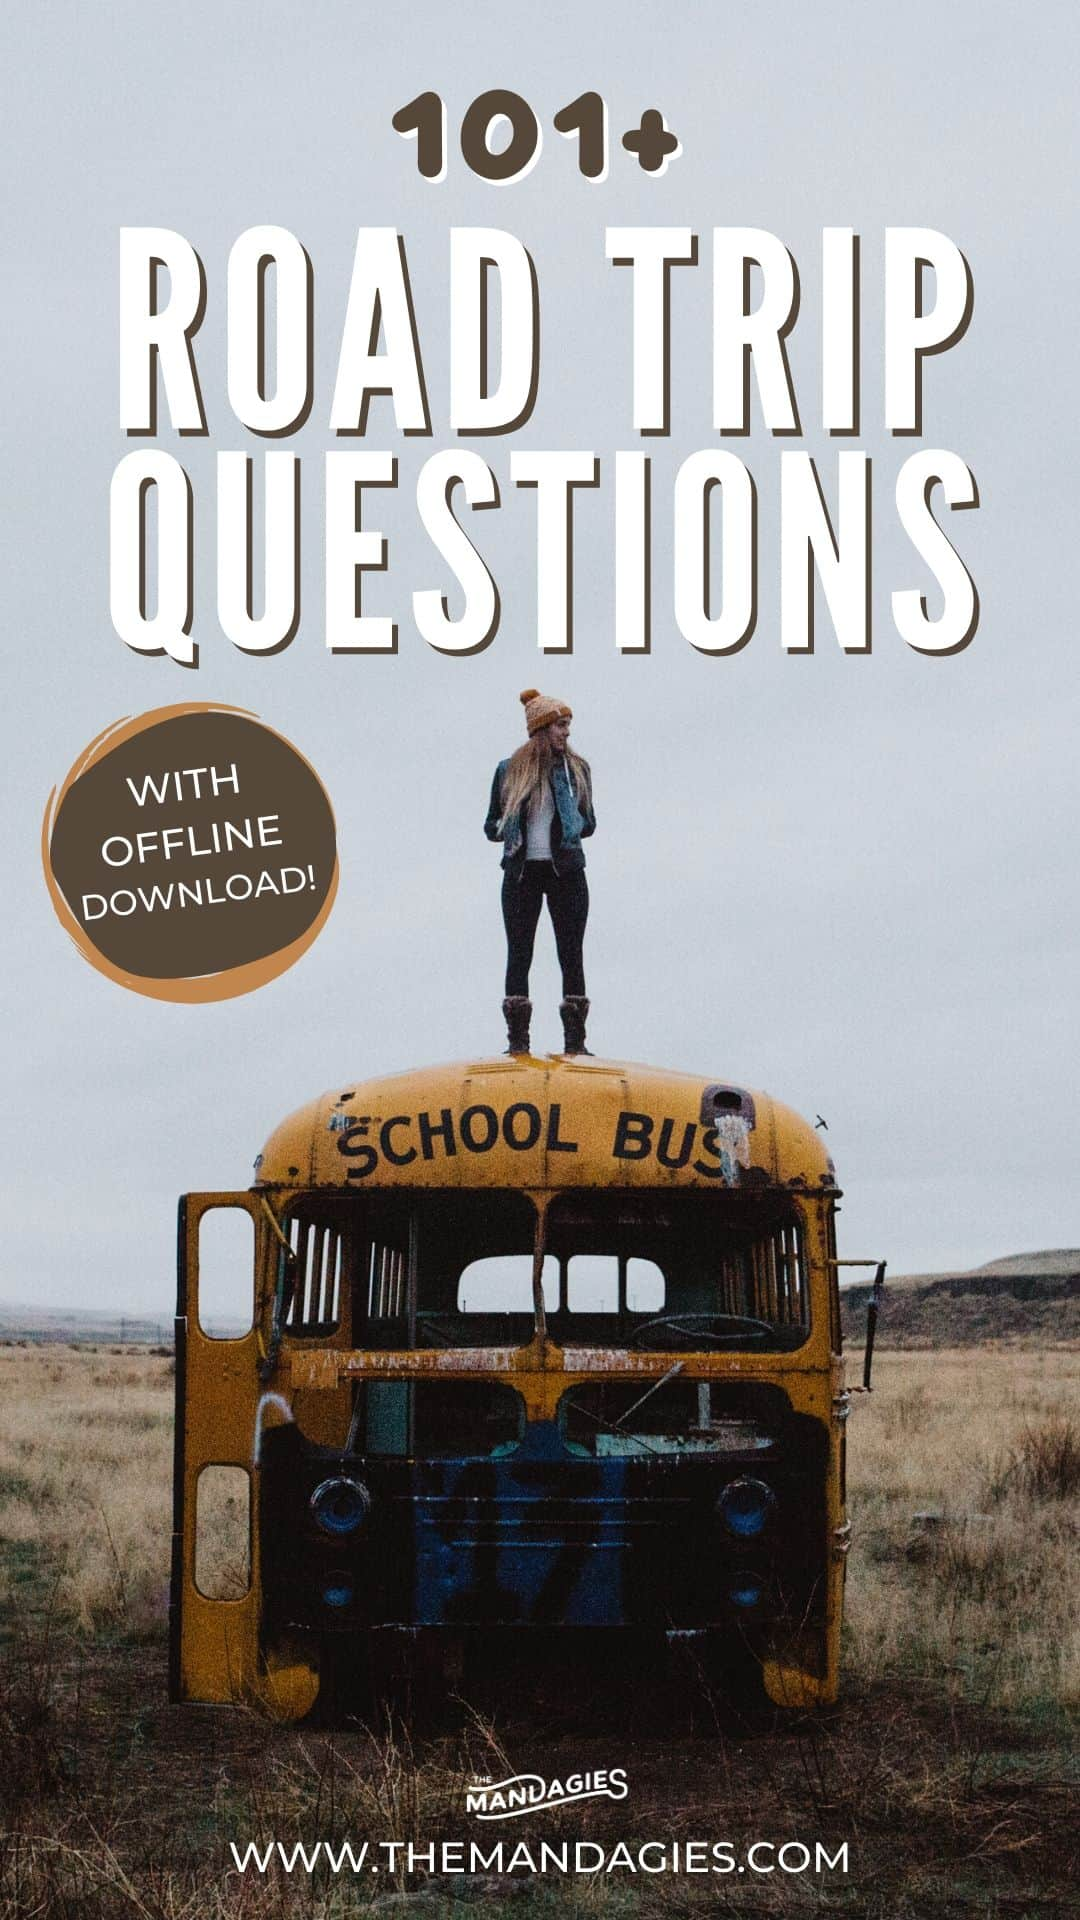 Bored in the car and you're in the car bored? Spice up any road trip adventure with these 101+ road trip questions! From funny to seriously, you'll be besties by the end of your journey. Download the list offline for free too! #roadtrip #friends #adventure #vacation #USA #travel #questions #couplesquestions